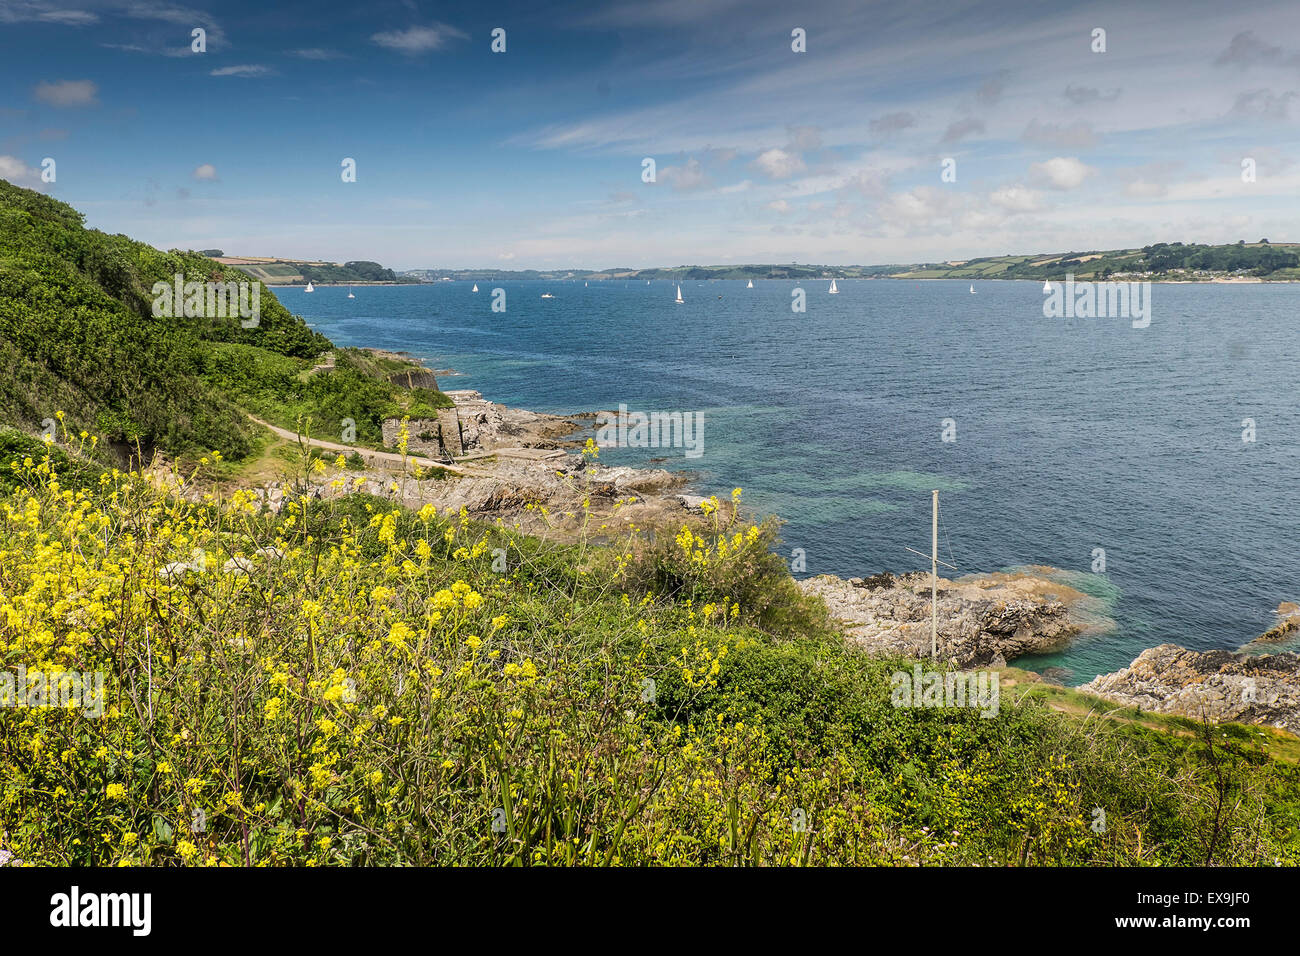 Carrick Roads seen from Pendennis point in Falmouth. - Stock Image